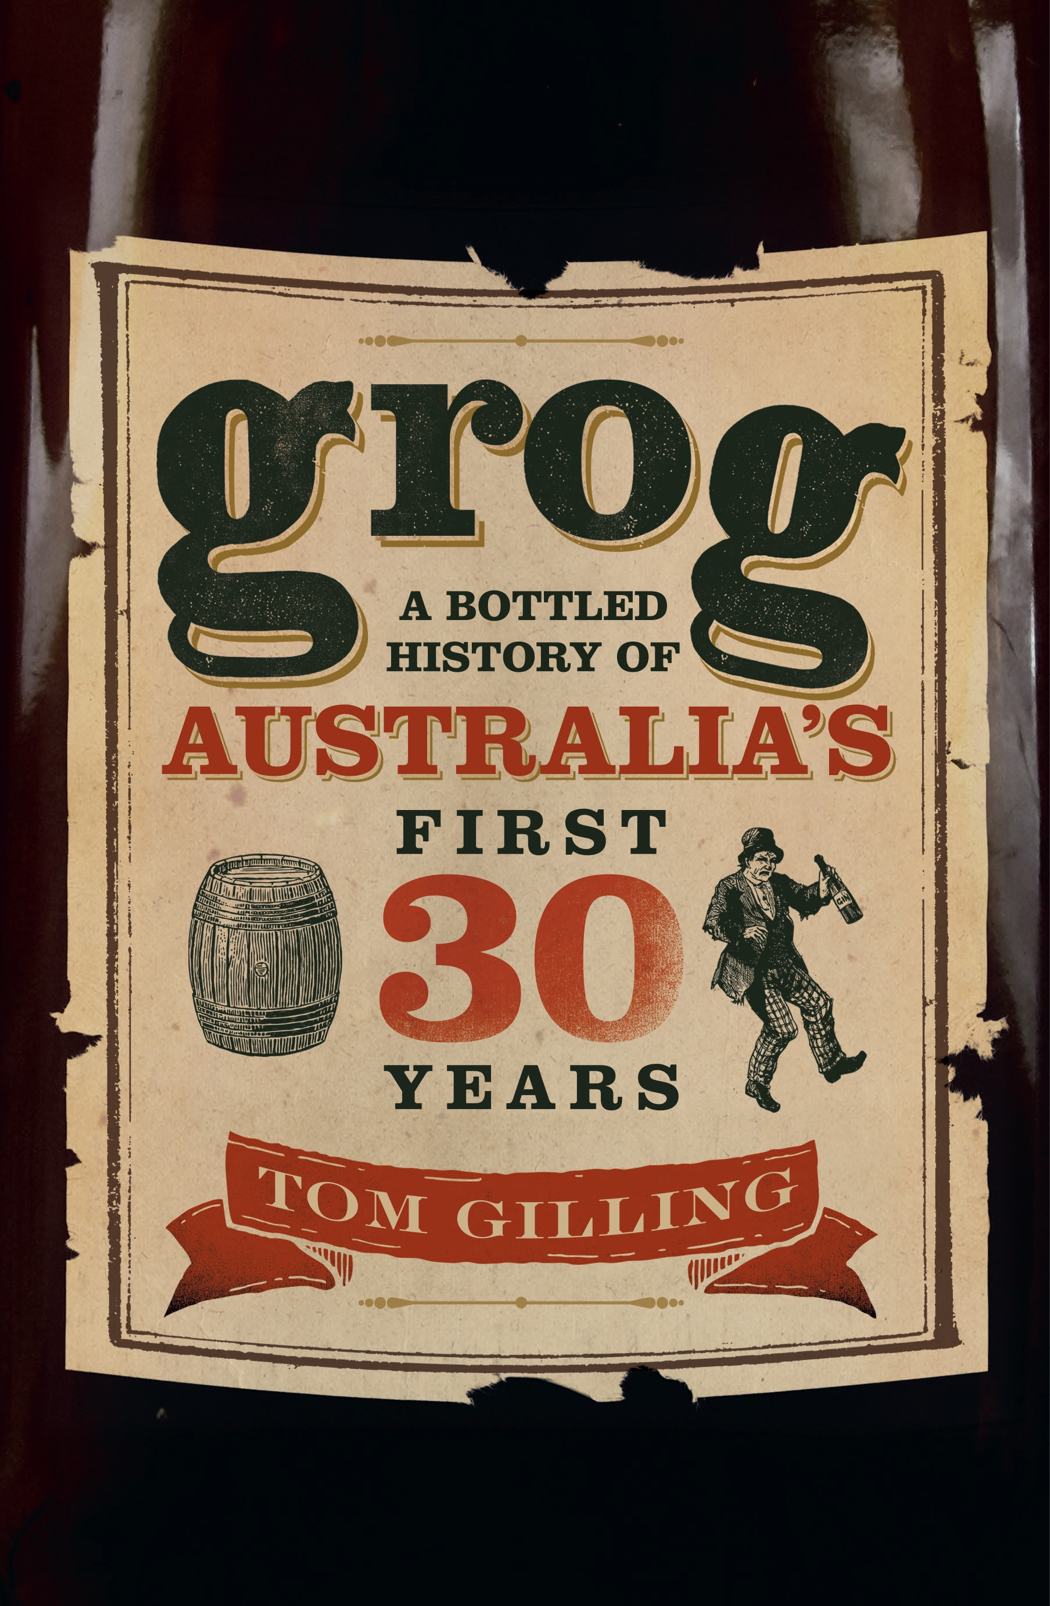 Grog: A Bottled History of Australia's First 30 Years, by Tom Gilling